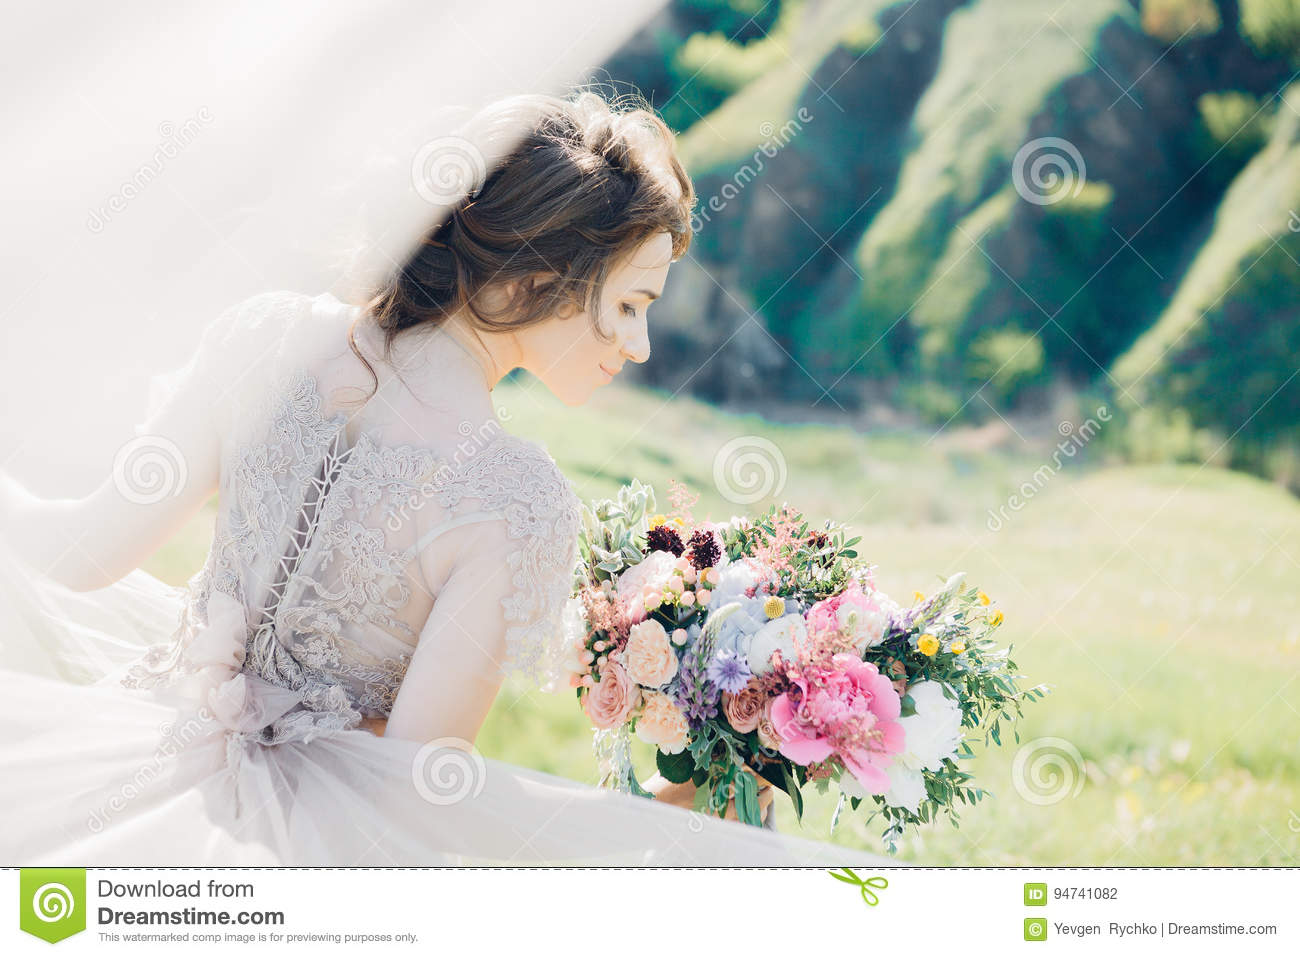 Fine Art Wedding Photography  Beautiful Bride With Bouquet